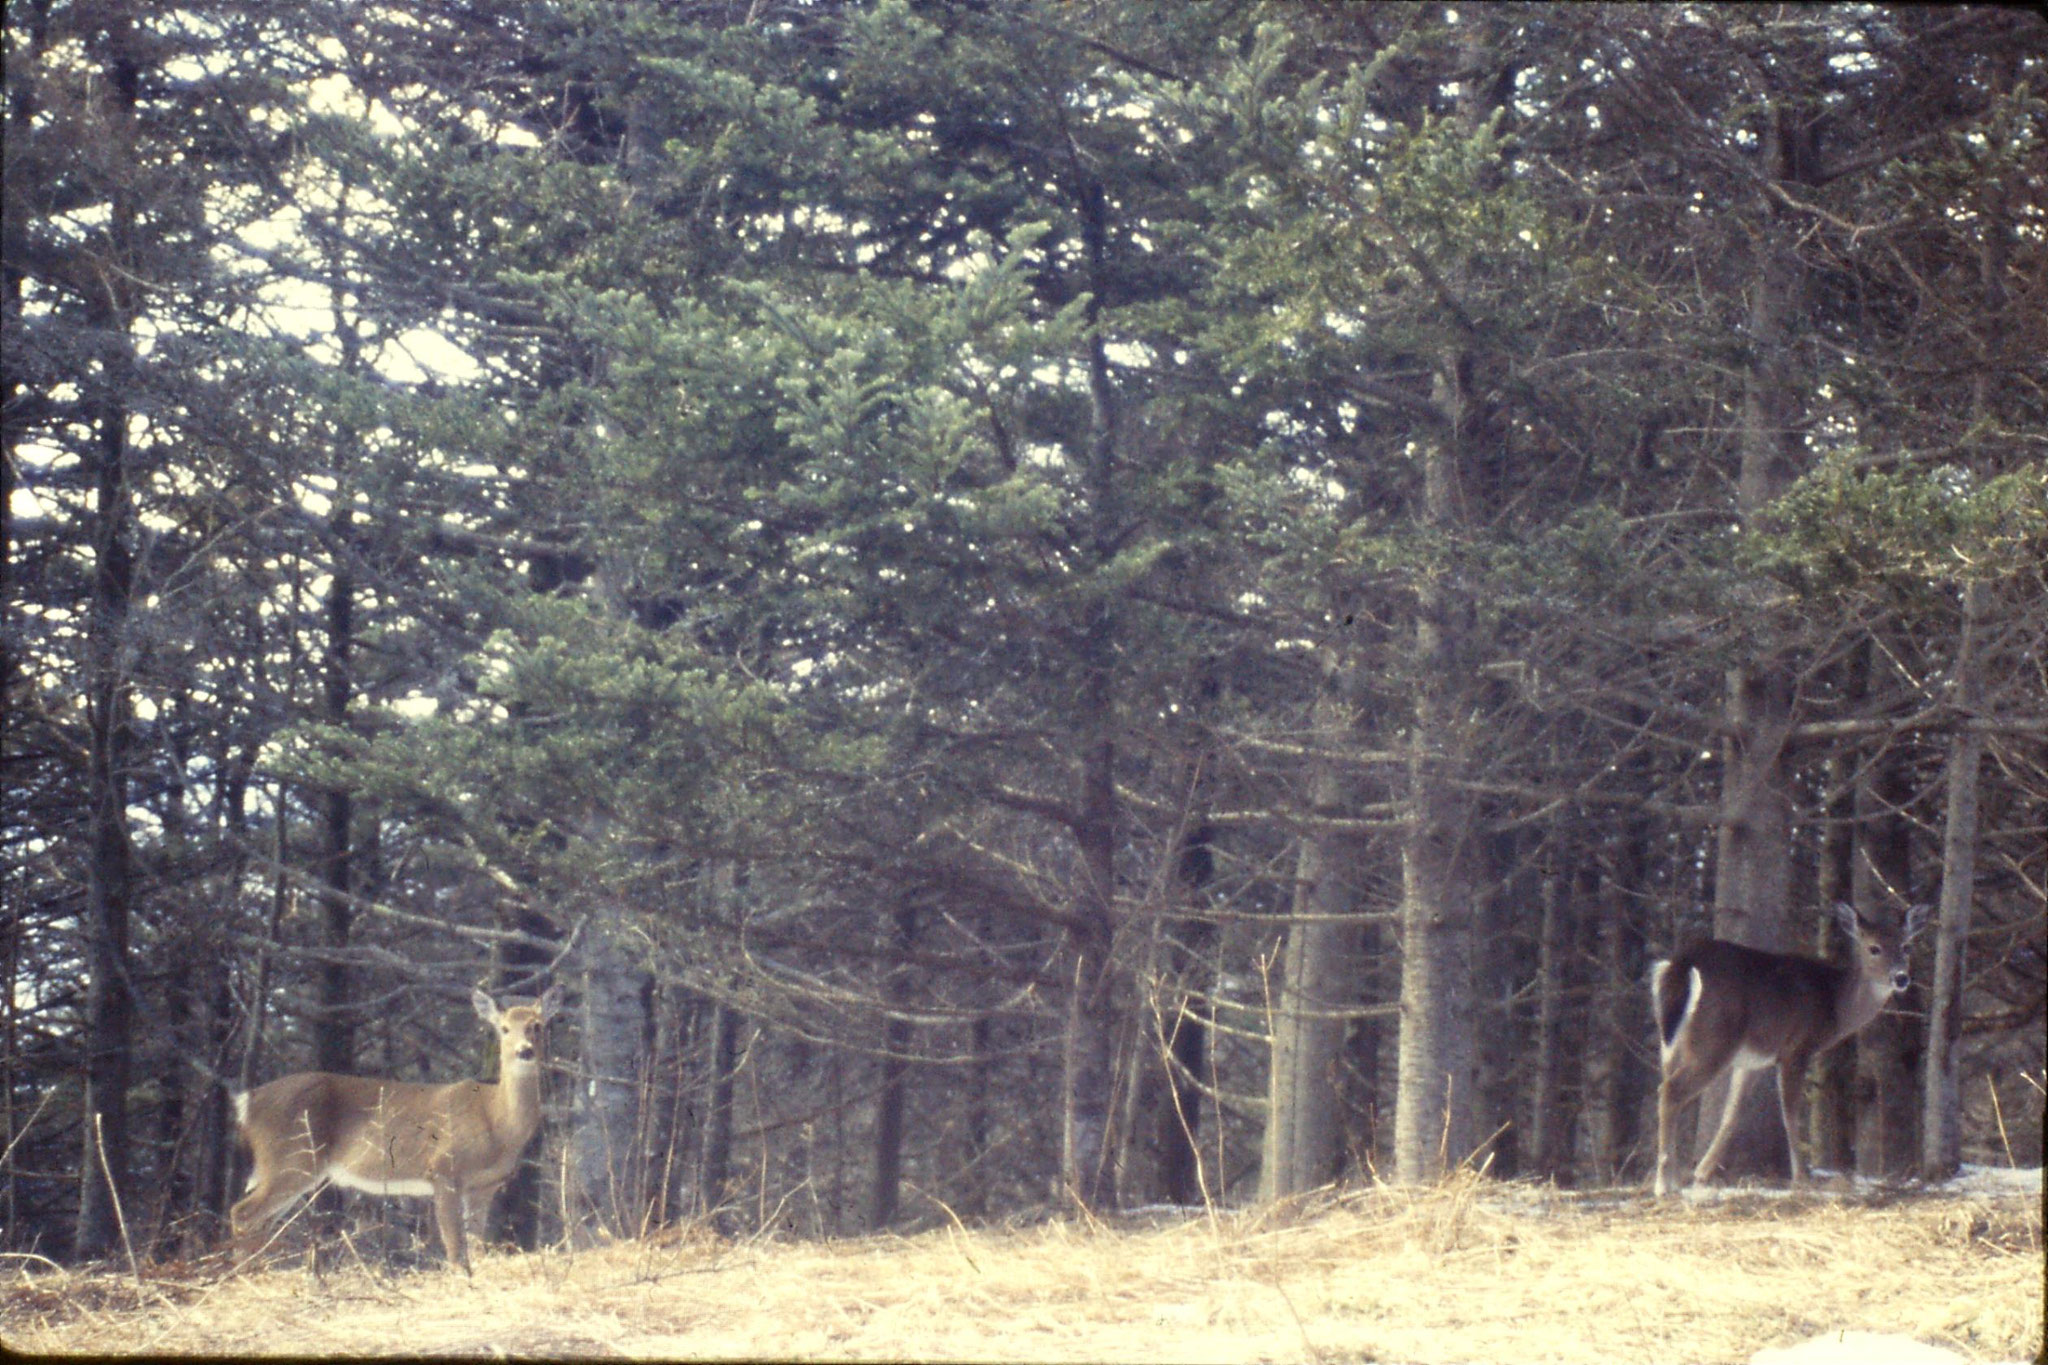 16/3/1991: 18: Mt Mitchell N.C. white tailed deer